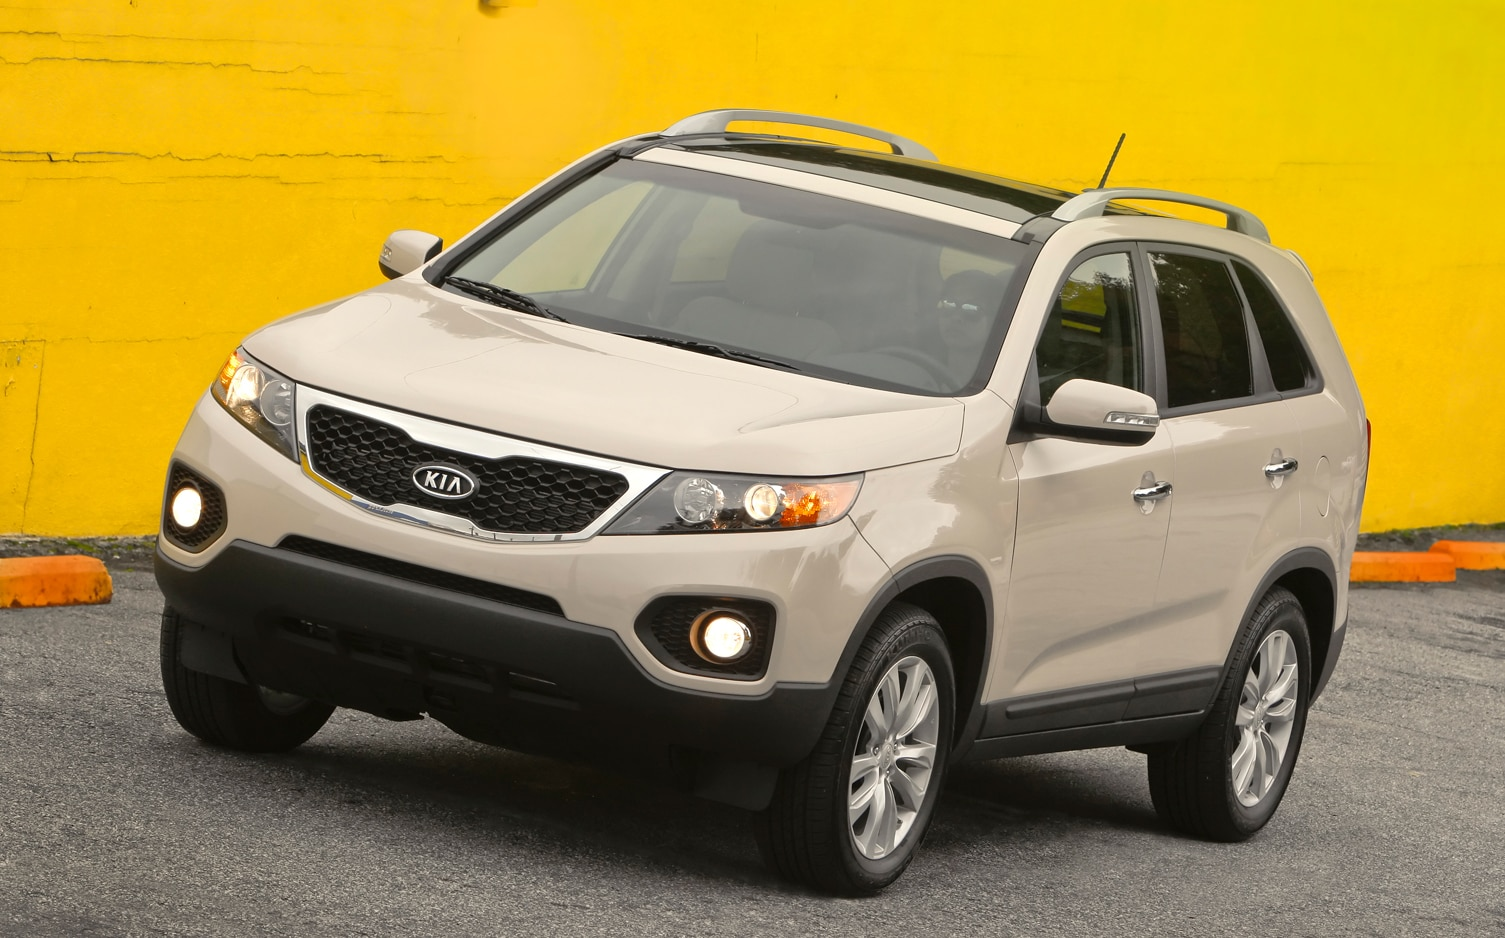 2012 kia sorento ex awd editors 39 notebook automobile magazine. Black Bedroom Furniture Sets. Home Design Ideas